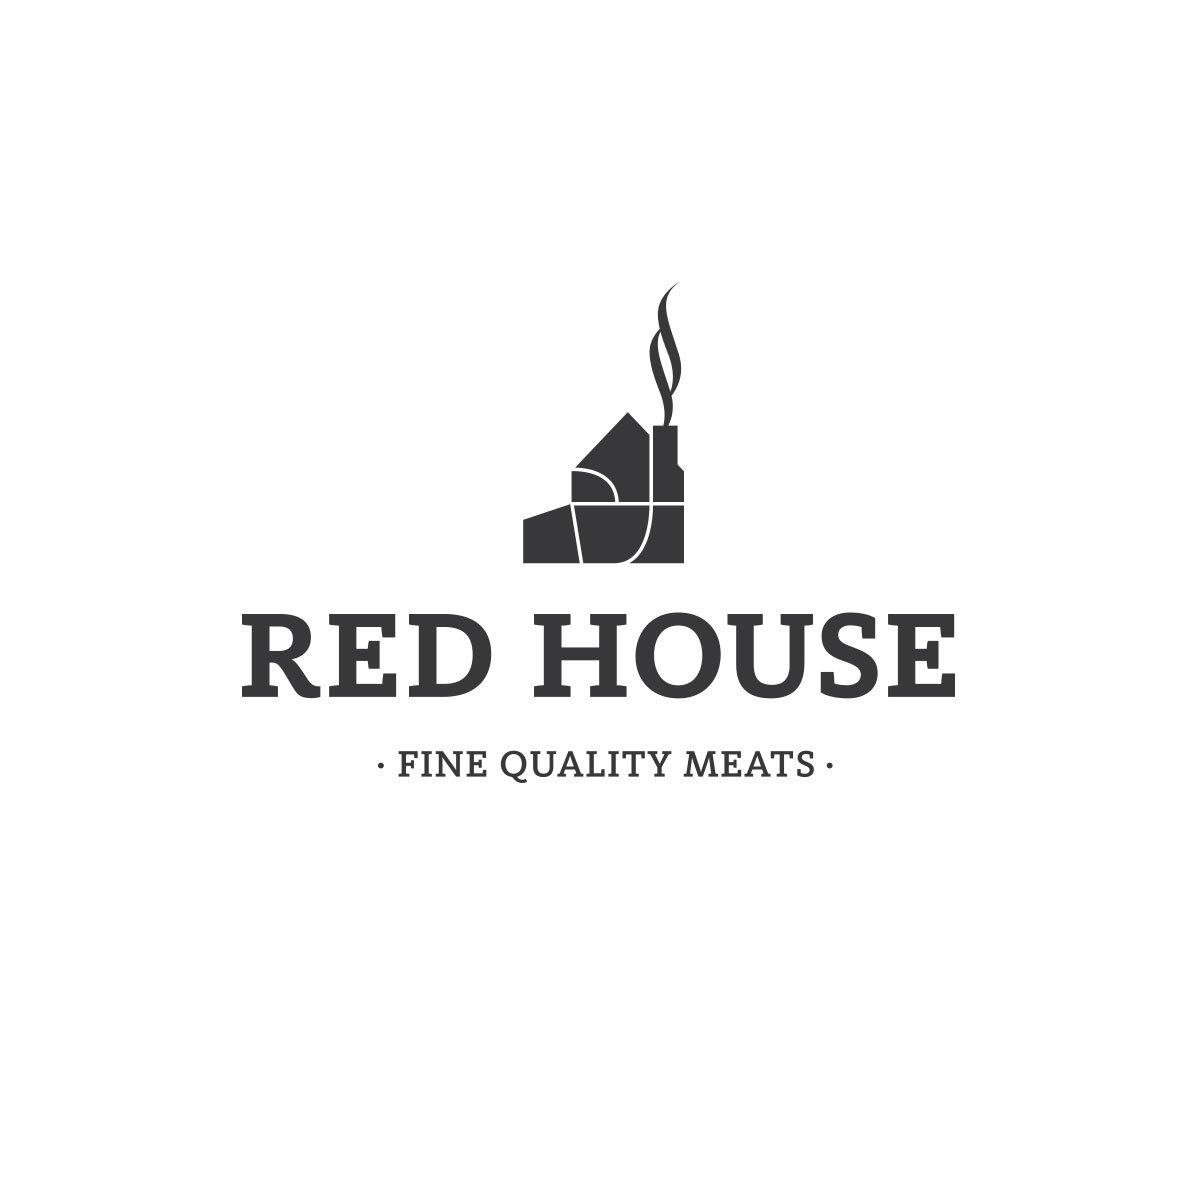 Red House meats branding